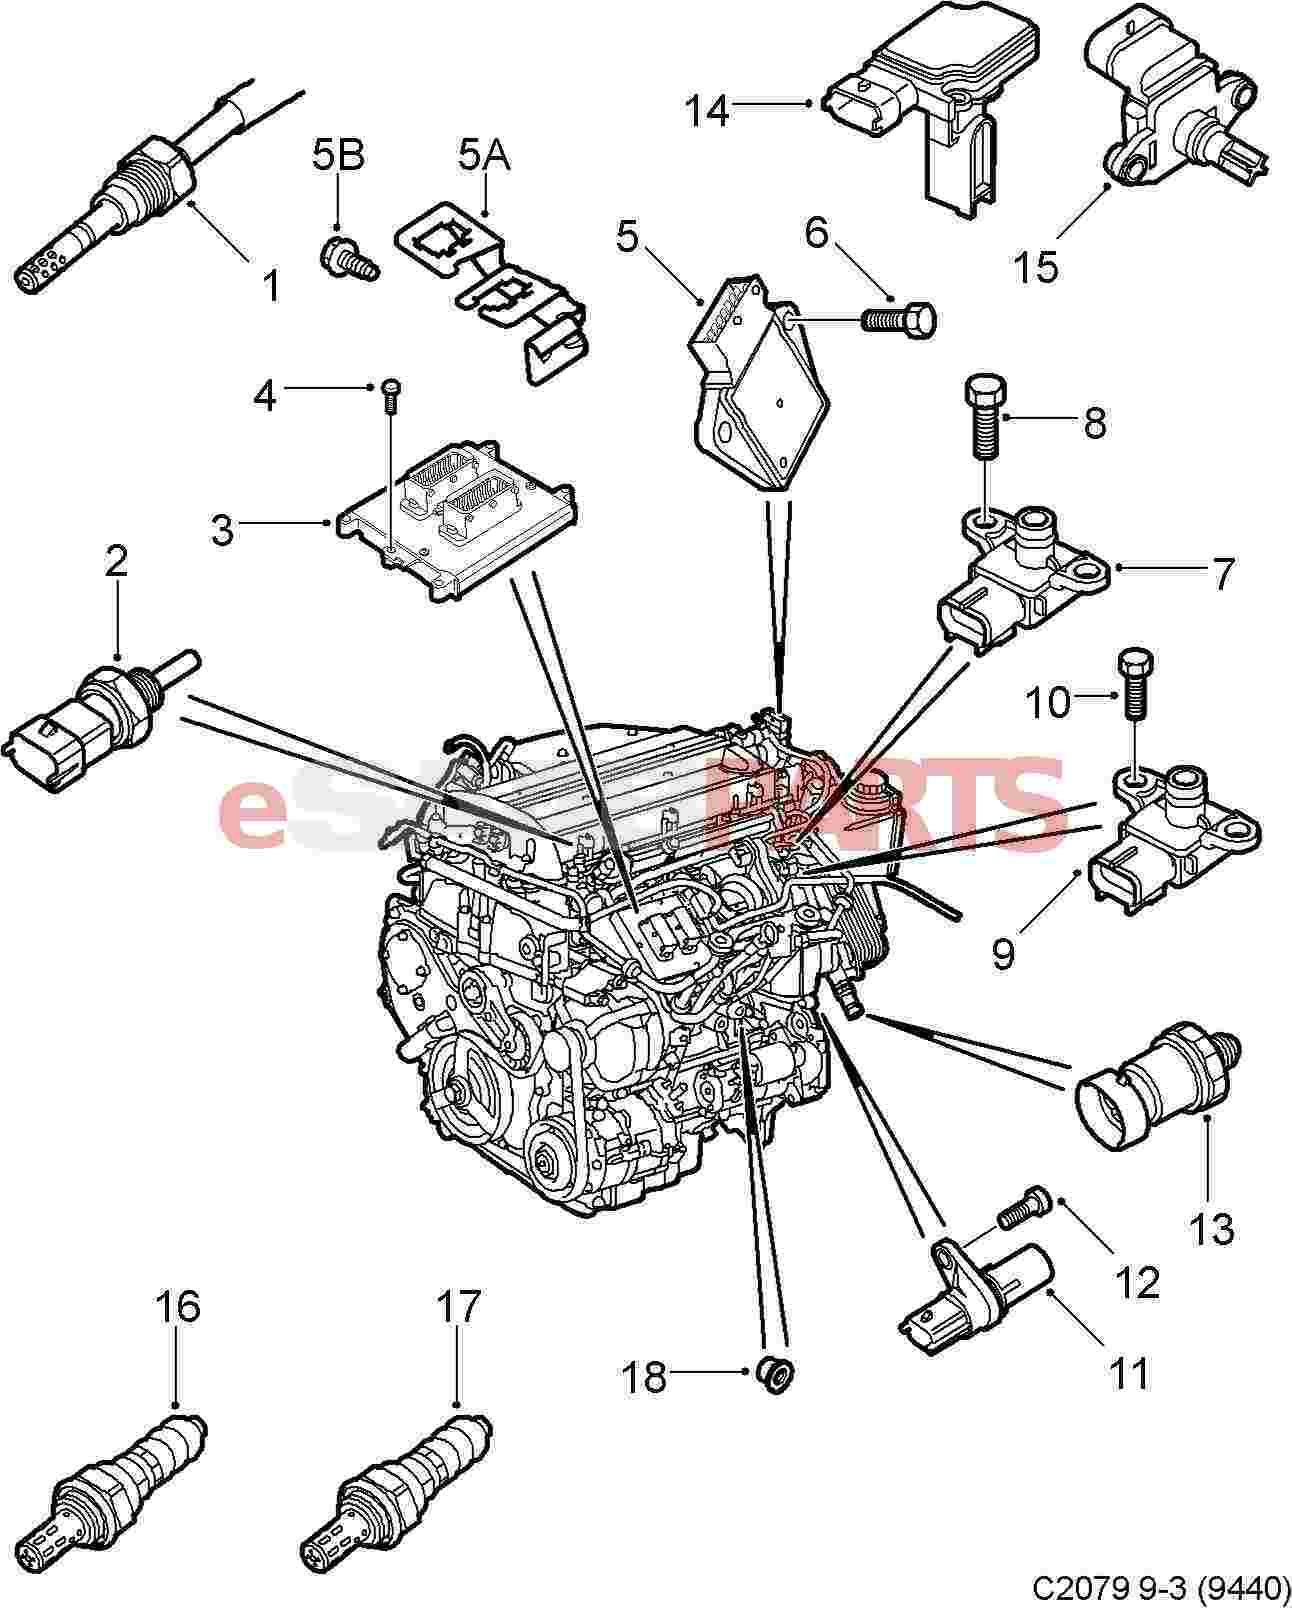 Saab 9 3 Parts Diagram - Wiring Diagram